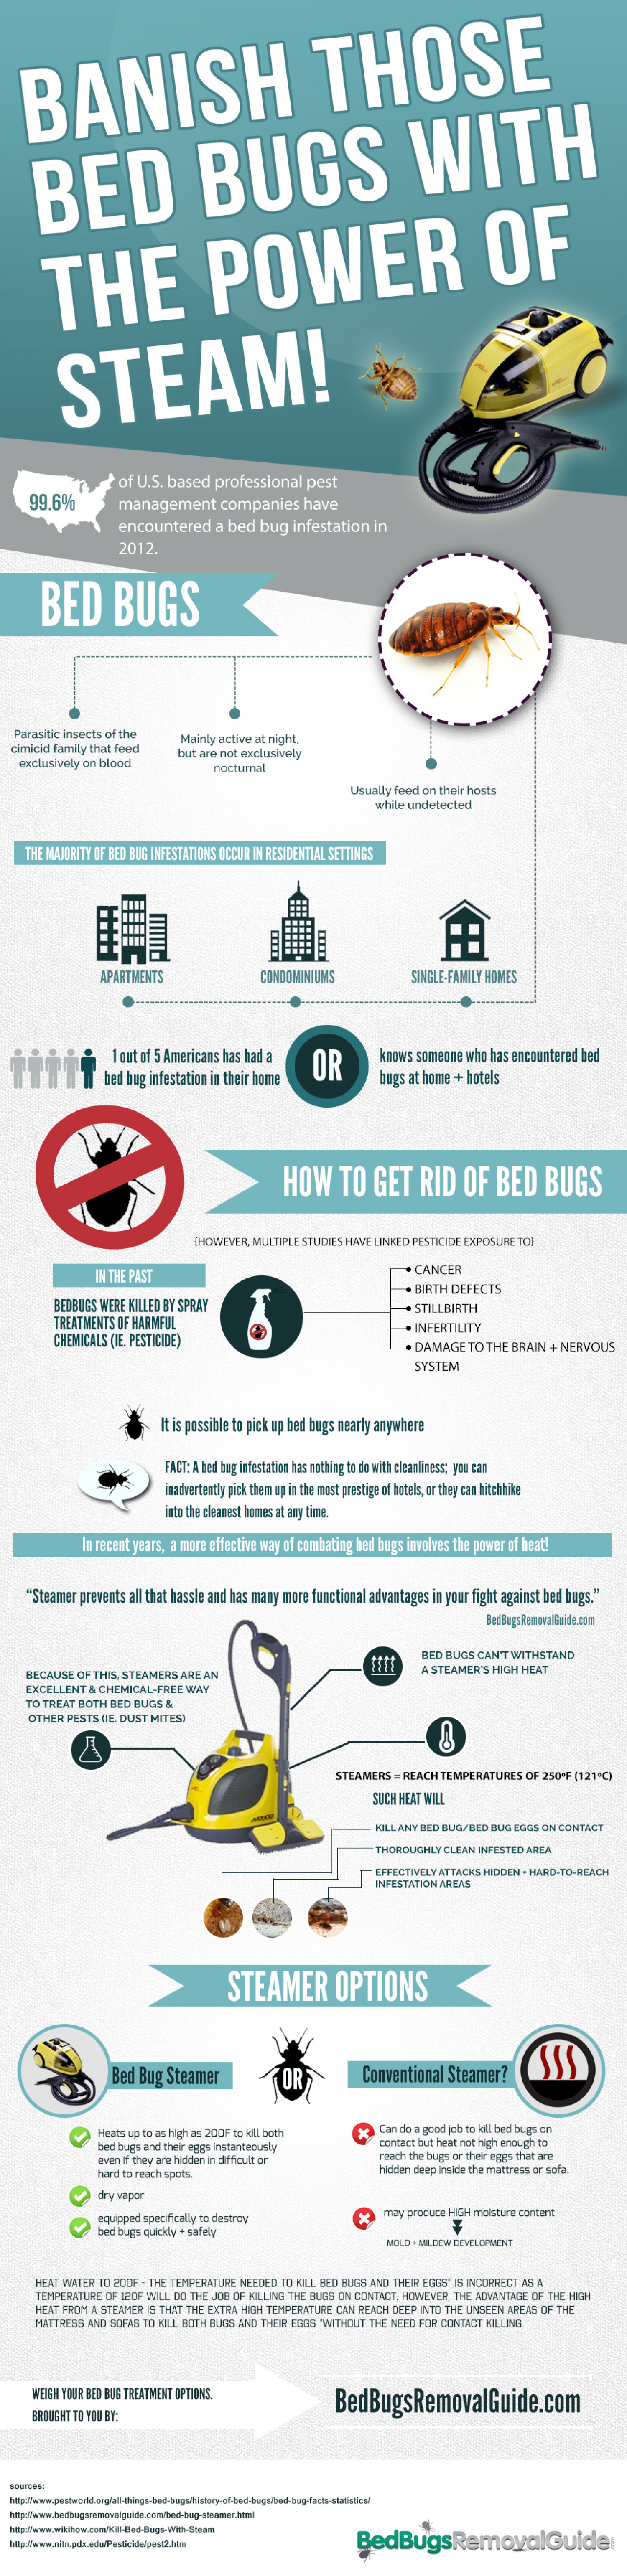 Banish Those Bed Bugs With The Power of Steam! Infographic